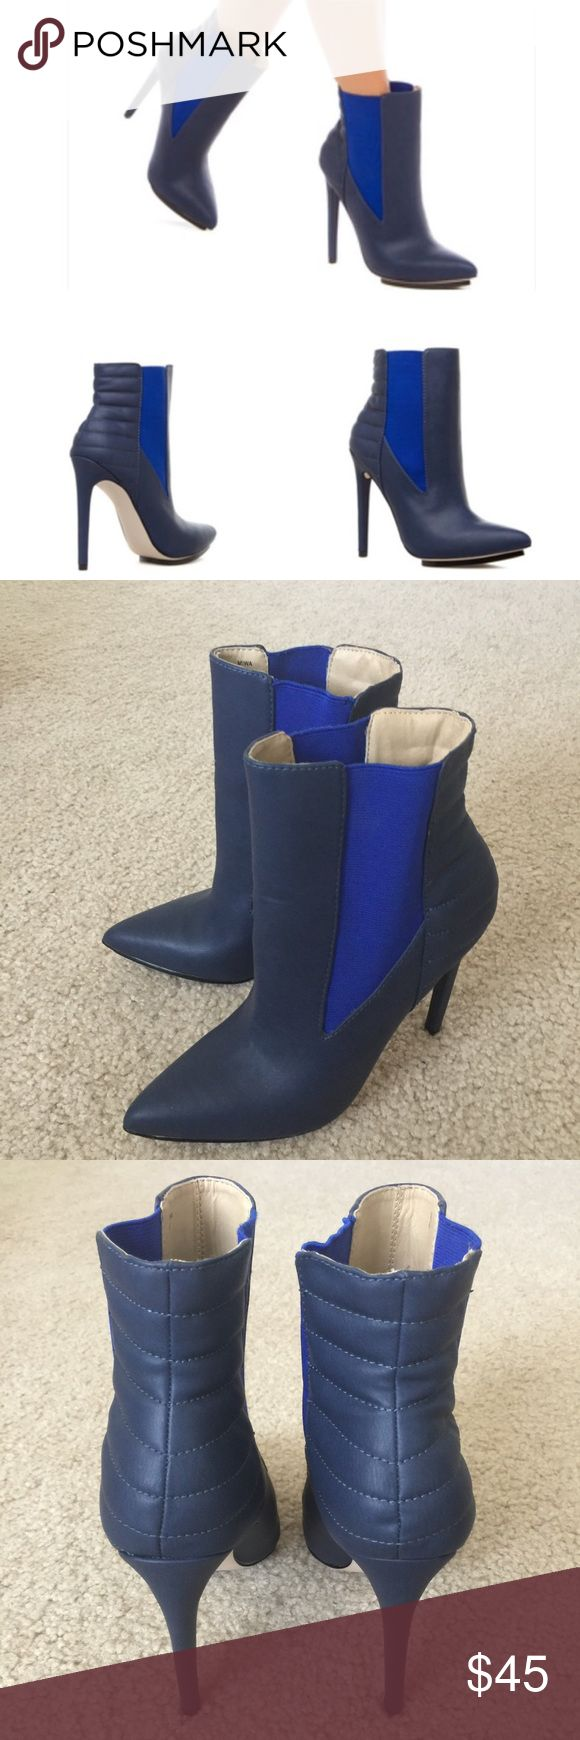 "GX by Gwen Stefani booties Gorgeous pair of blue booties by GX by Gwen Stefani. Size 7. // 4.75"" heels. These were worn once and are in great condition. Refer to photos and zoom in for details. Retails for $90. Please ask questions 💫 GX by Gwen Stefani Shoes Ankle Boots & Booties"